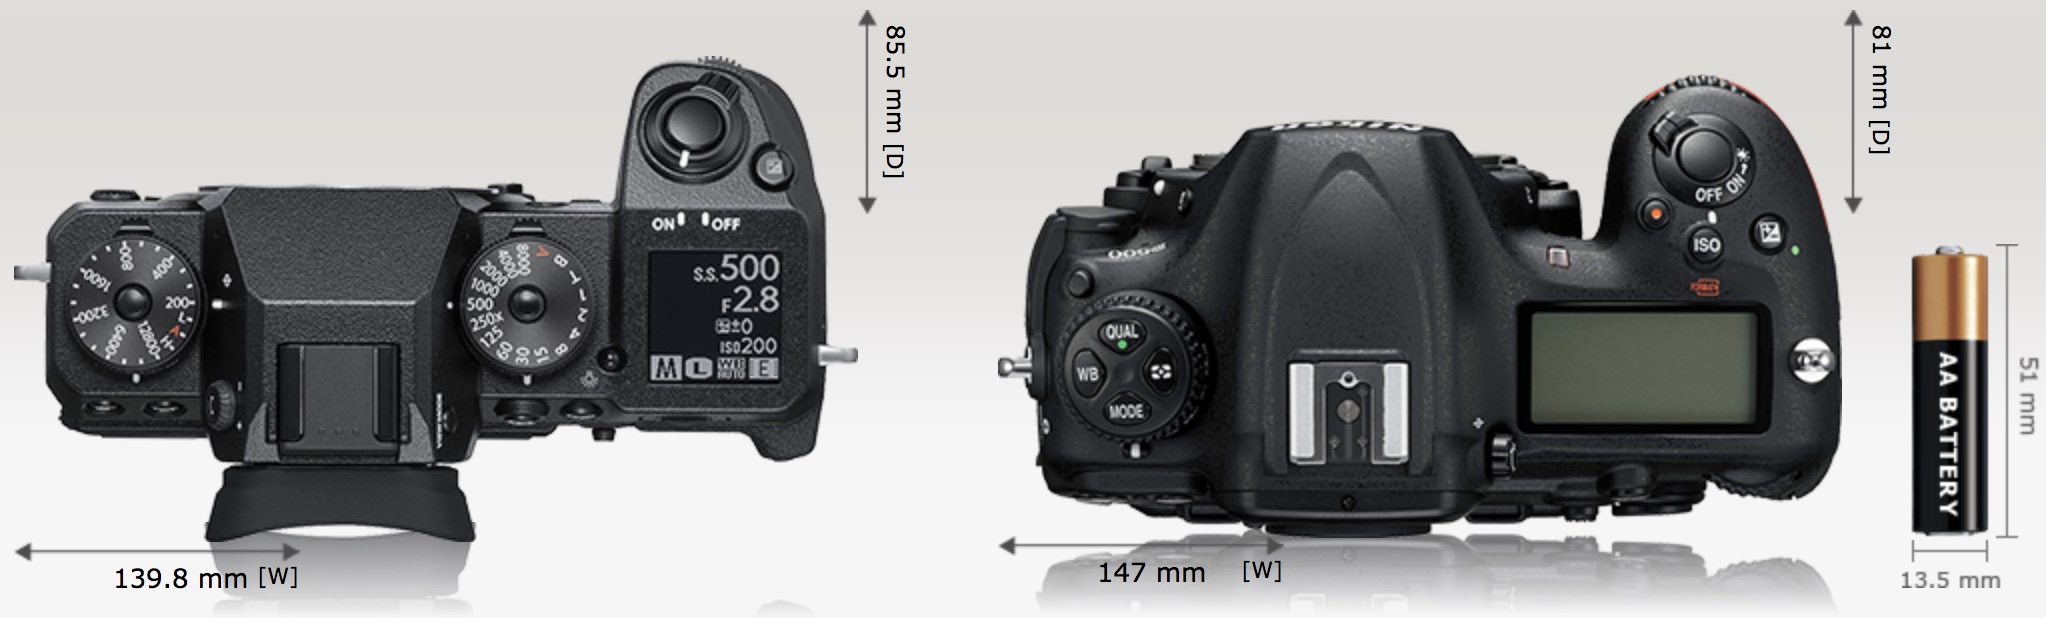 Fujifilm X-H1: Popular Competitor Camera Size Comparison